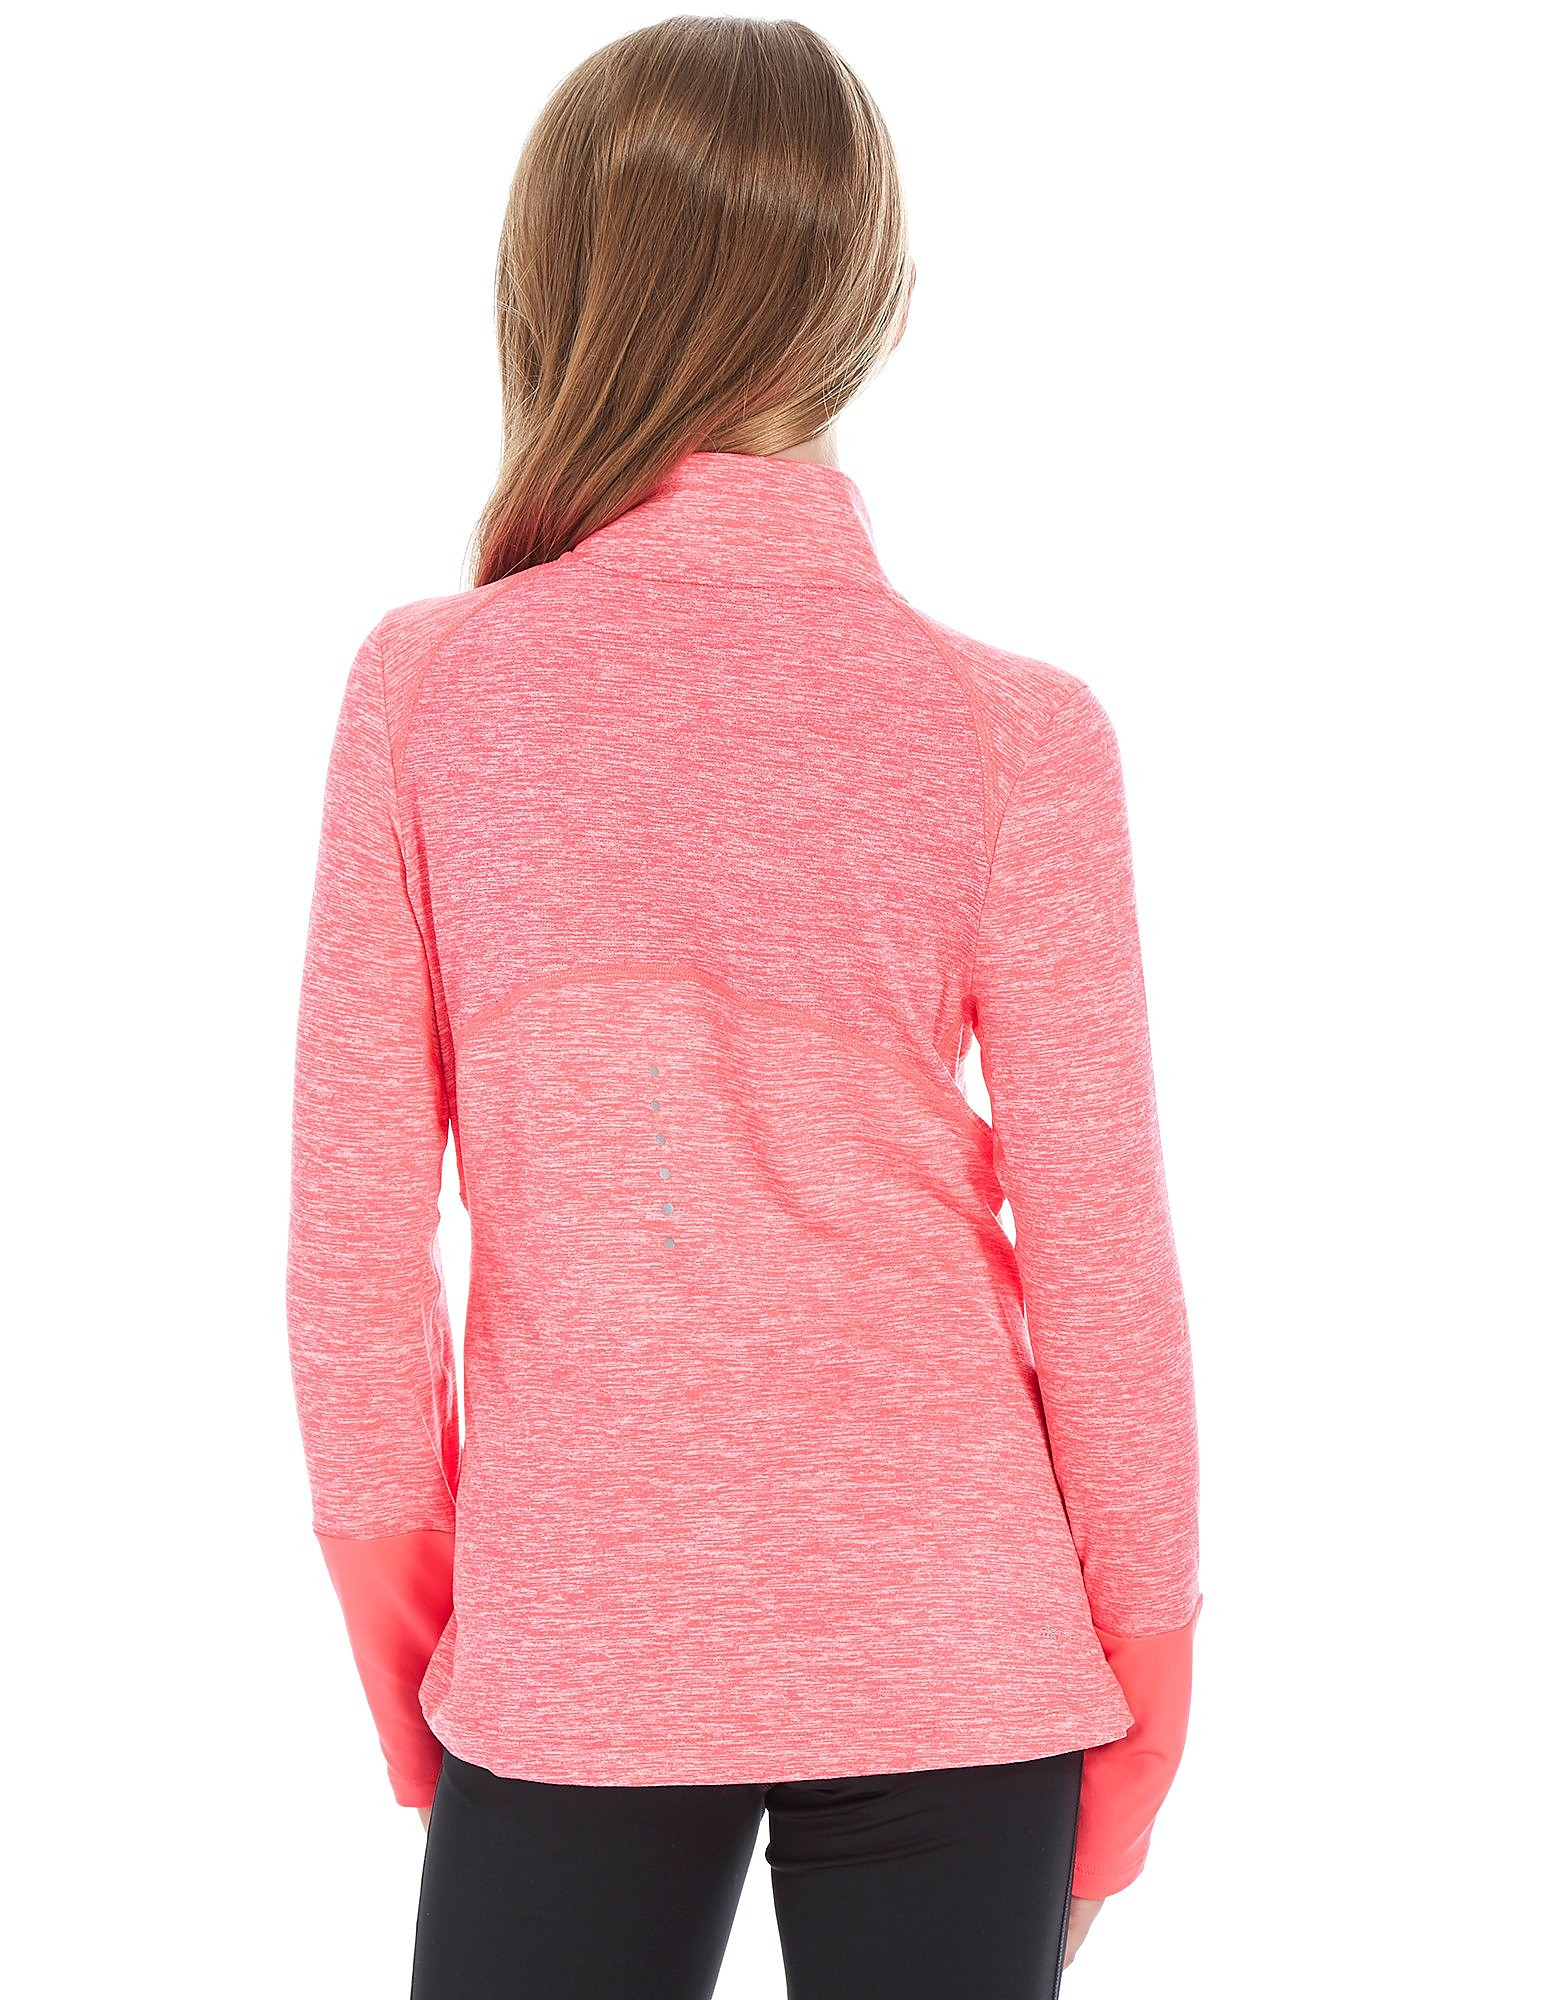 Nike Girls' Element 1/4 Zip Top Junior